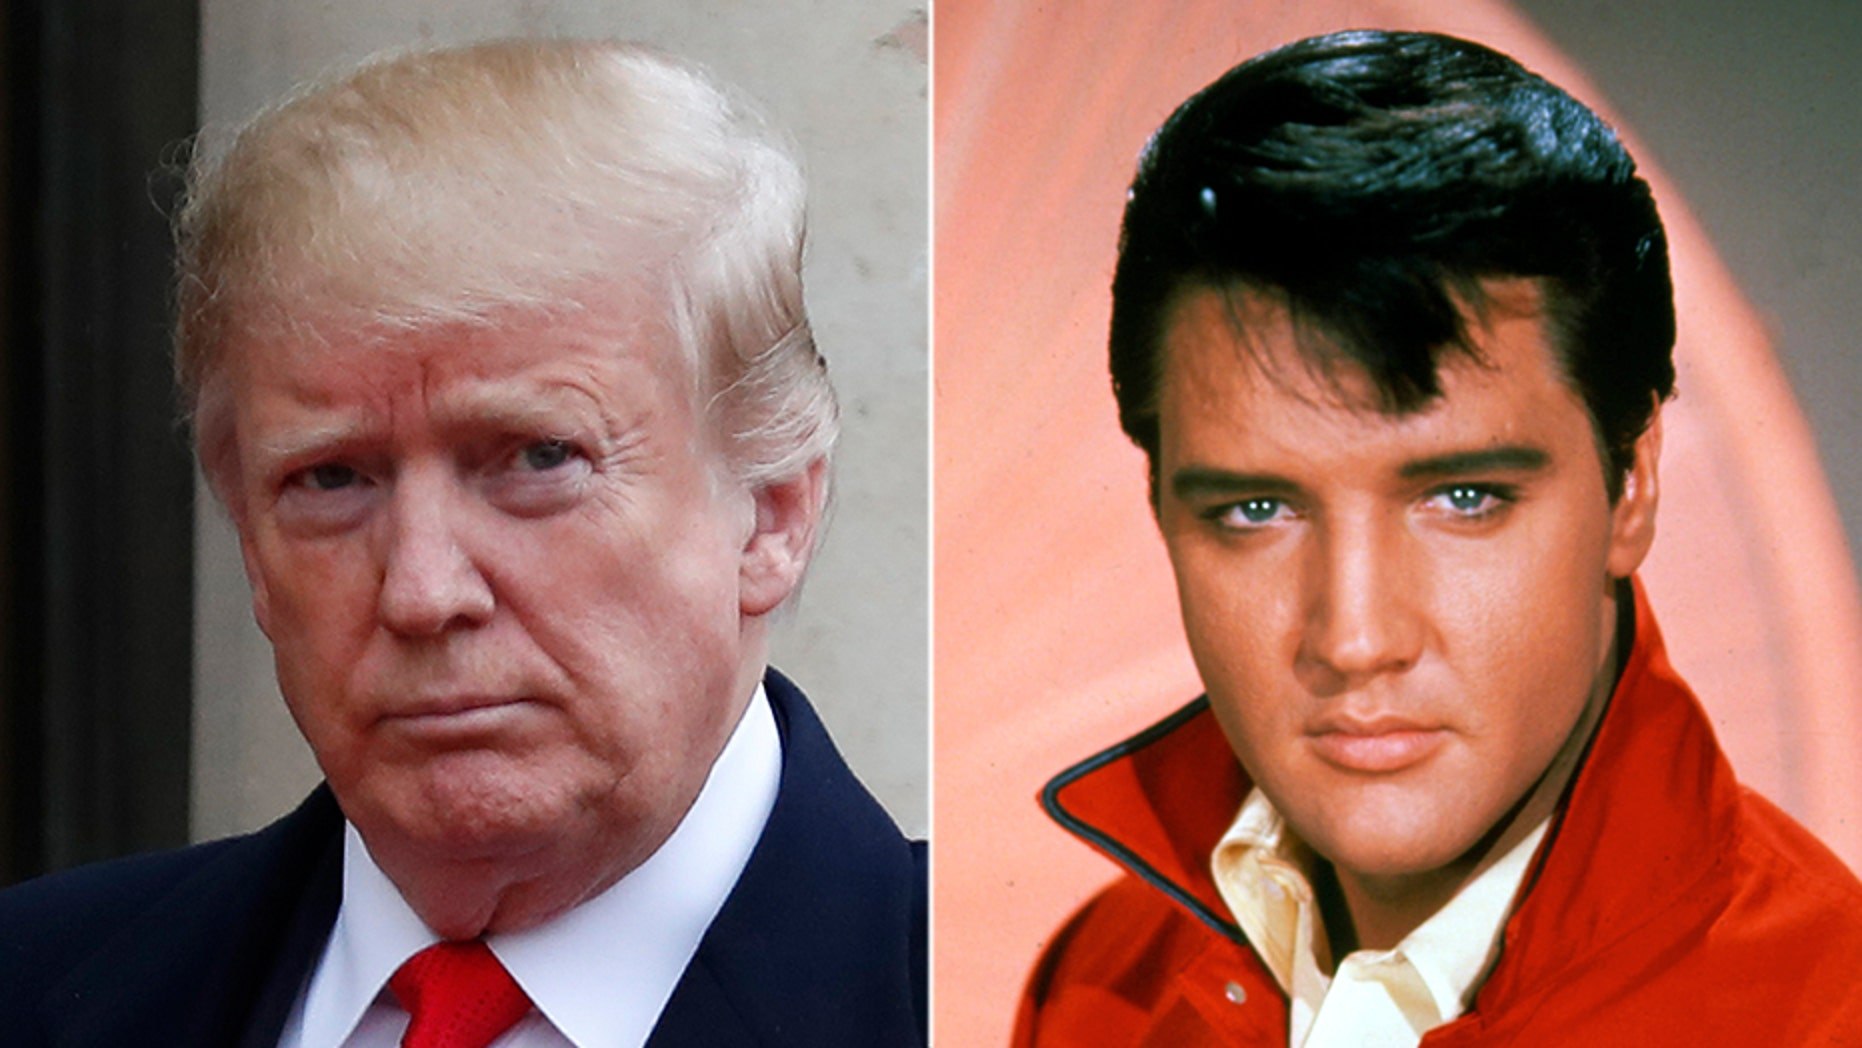 President Trump awarded the Presidential Medal of Freedom to seven Americans on Friday, including the late rock star Elvis Presley, though even that gesture is coming under fire from liberals. (Getty)<br>